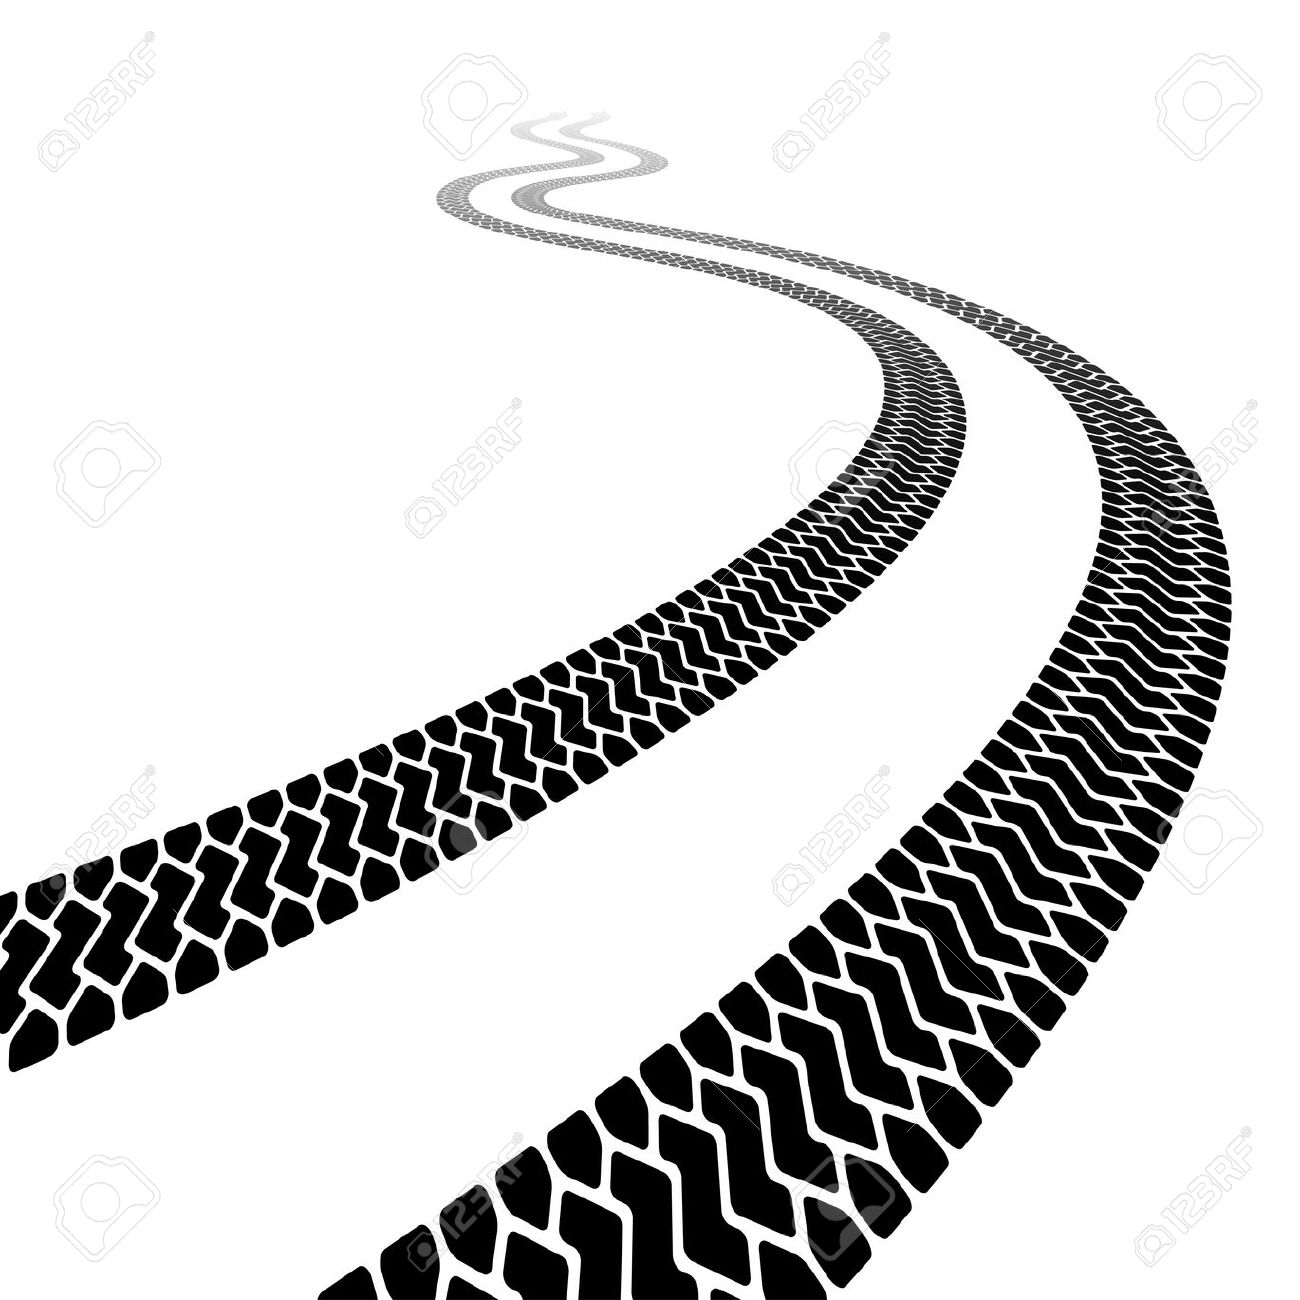 Winding Trace Of The Terrain Tyres Royalty Free Cliparts, Vectors.